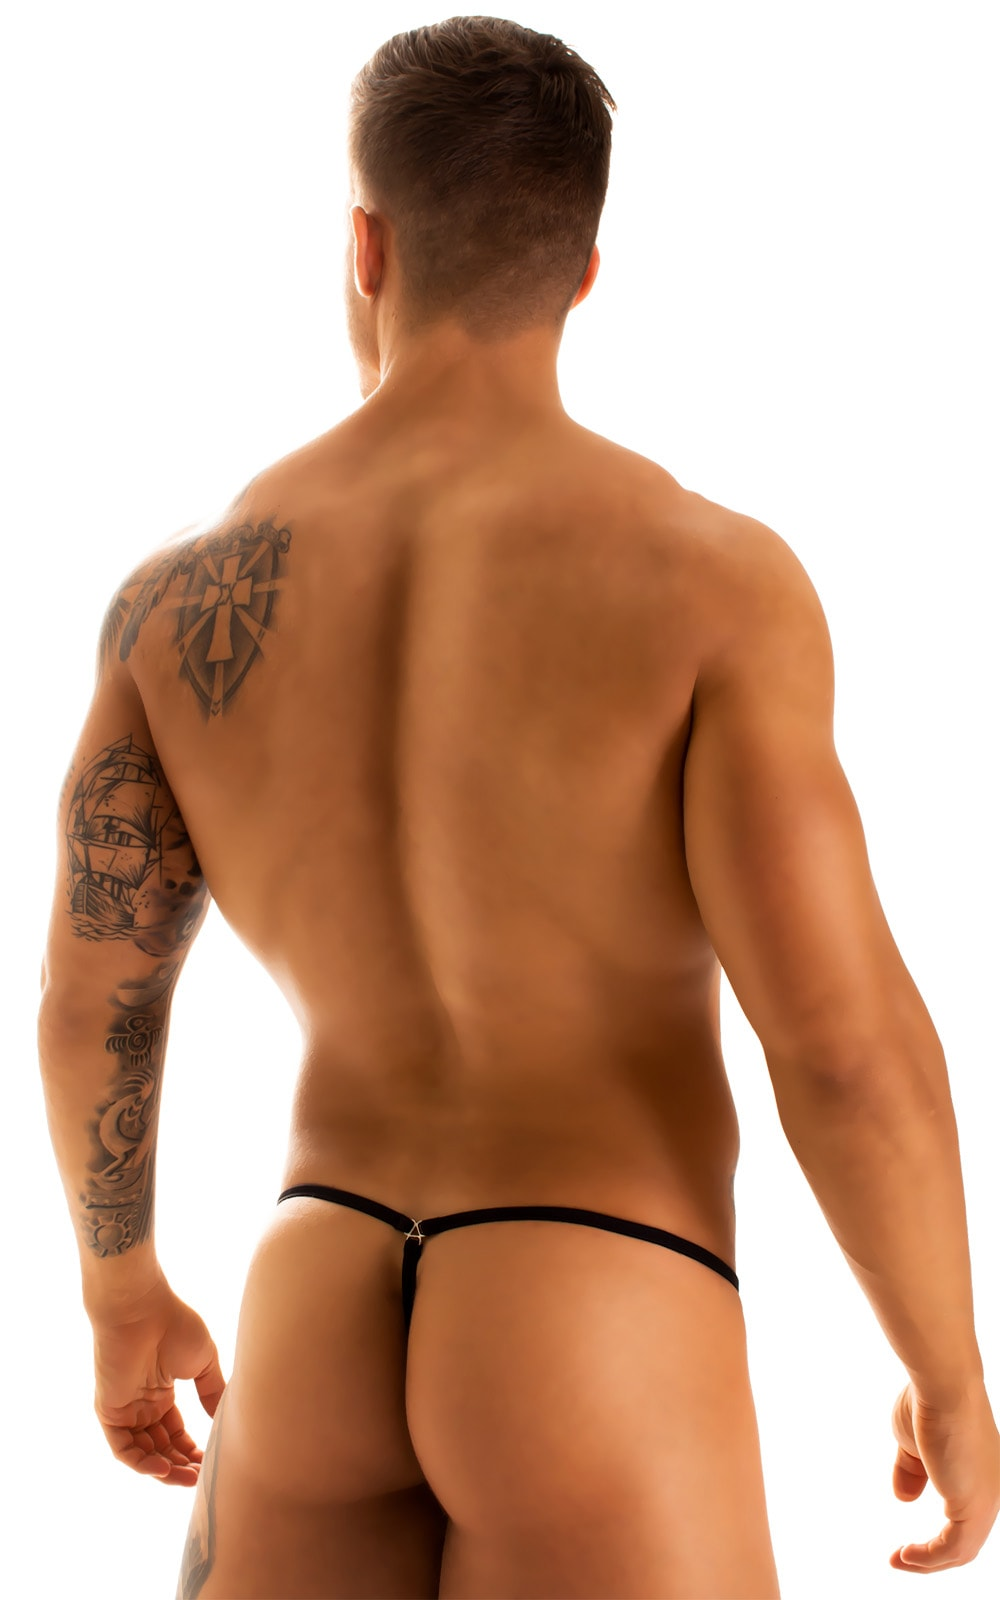 G String Swimsuit - Adjustable Pouch in Black Spiderweb Mesh with Black Strings  2